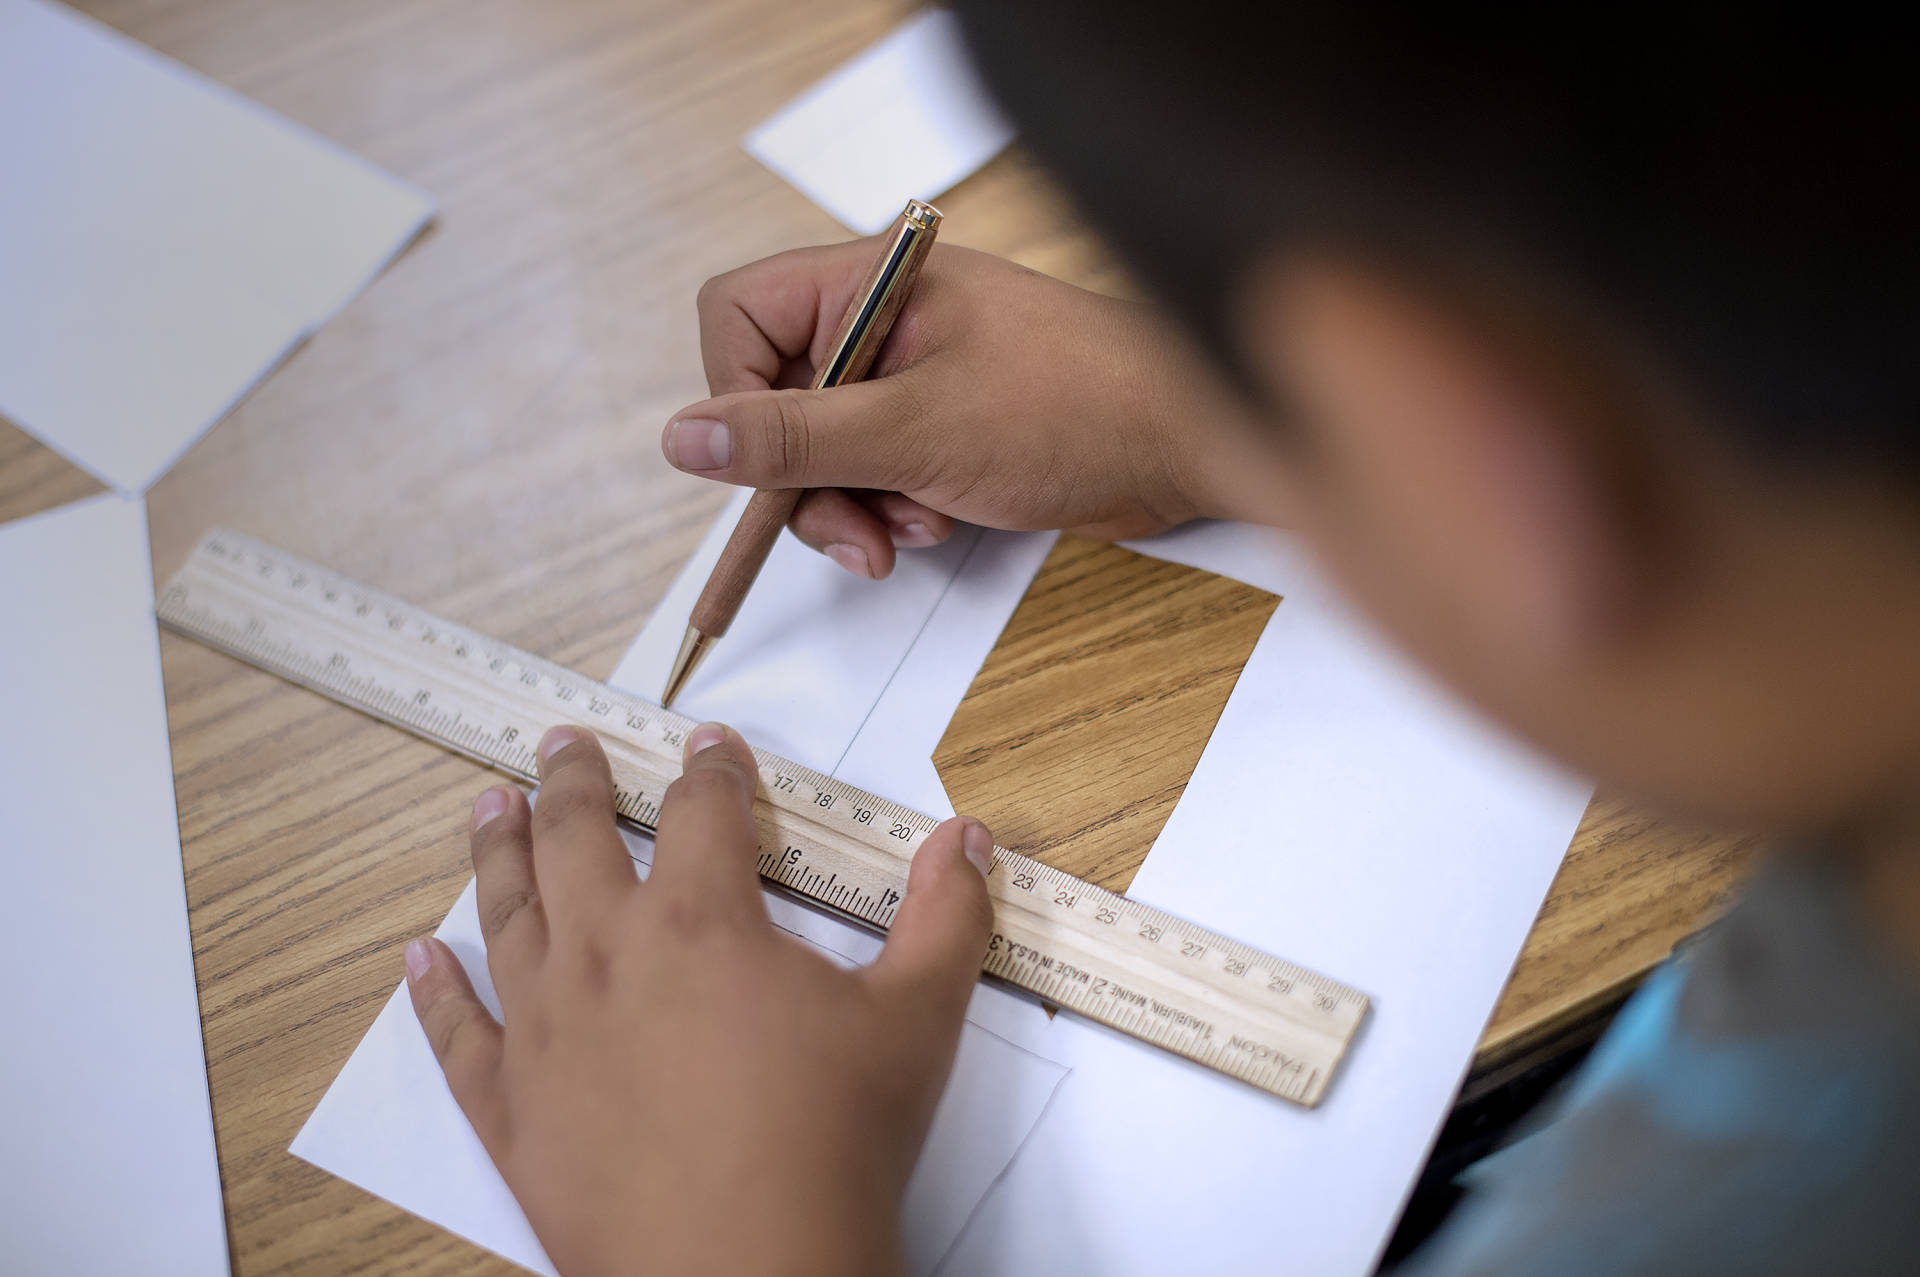 How 'Productive Failure' In Math Class Helps Make Lessons Stick